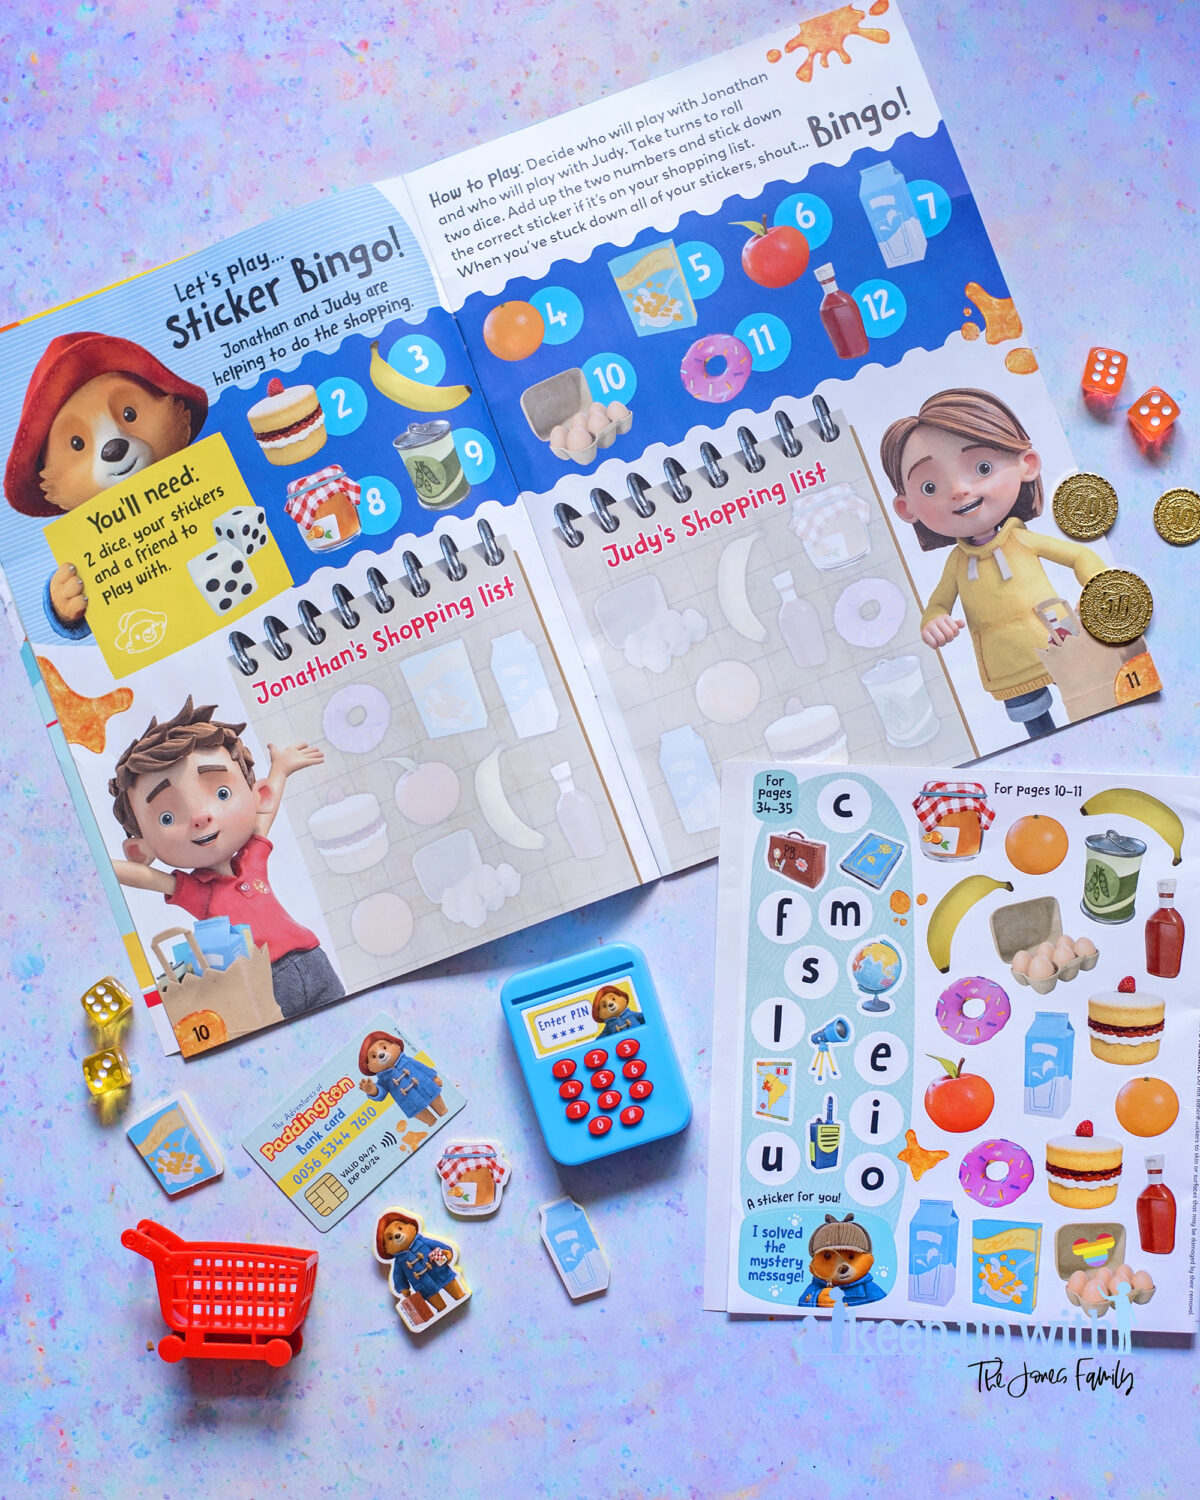 The Adventures of Paddington Bear Magazine EYFS. Photograph shows a spread of the magazine featuring a dice throwing game to calculate the cost of shopping for the under sixes.  There are coloured dice and stickers to help with the activity.